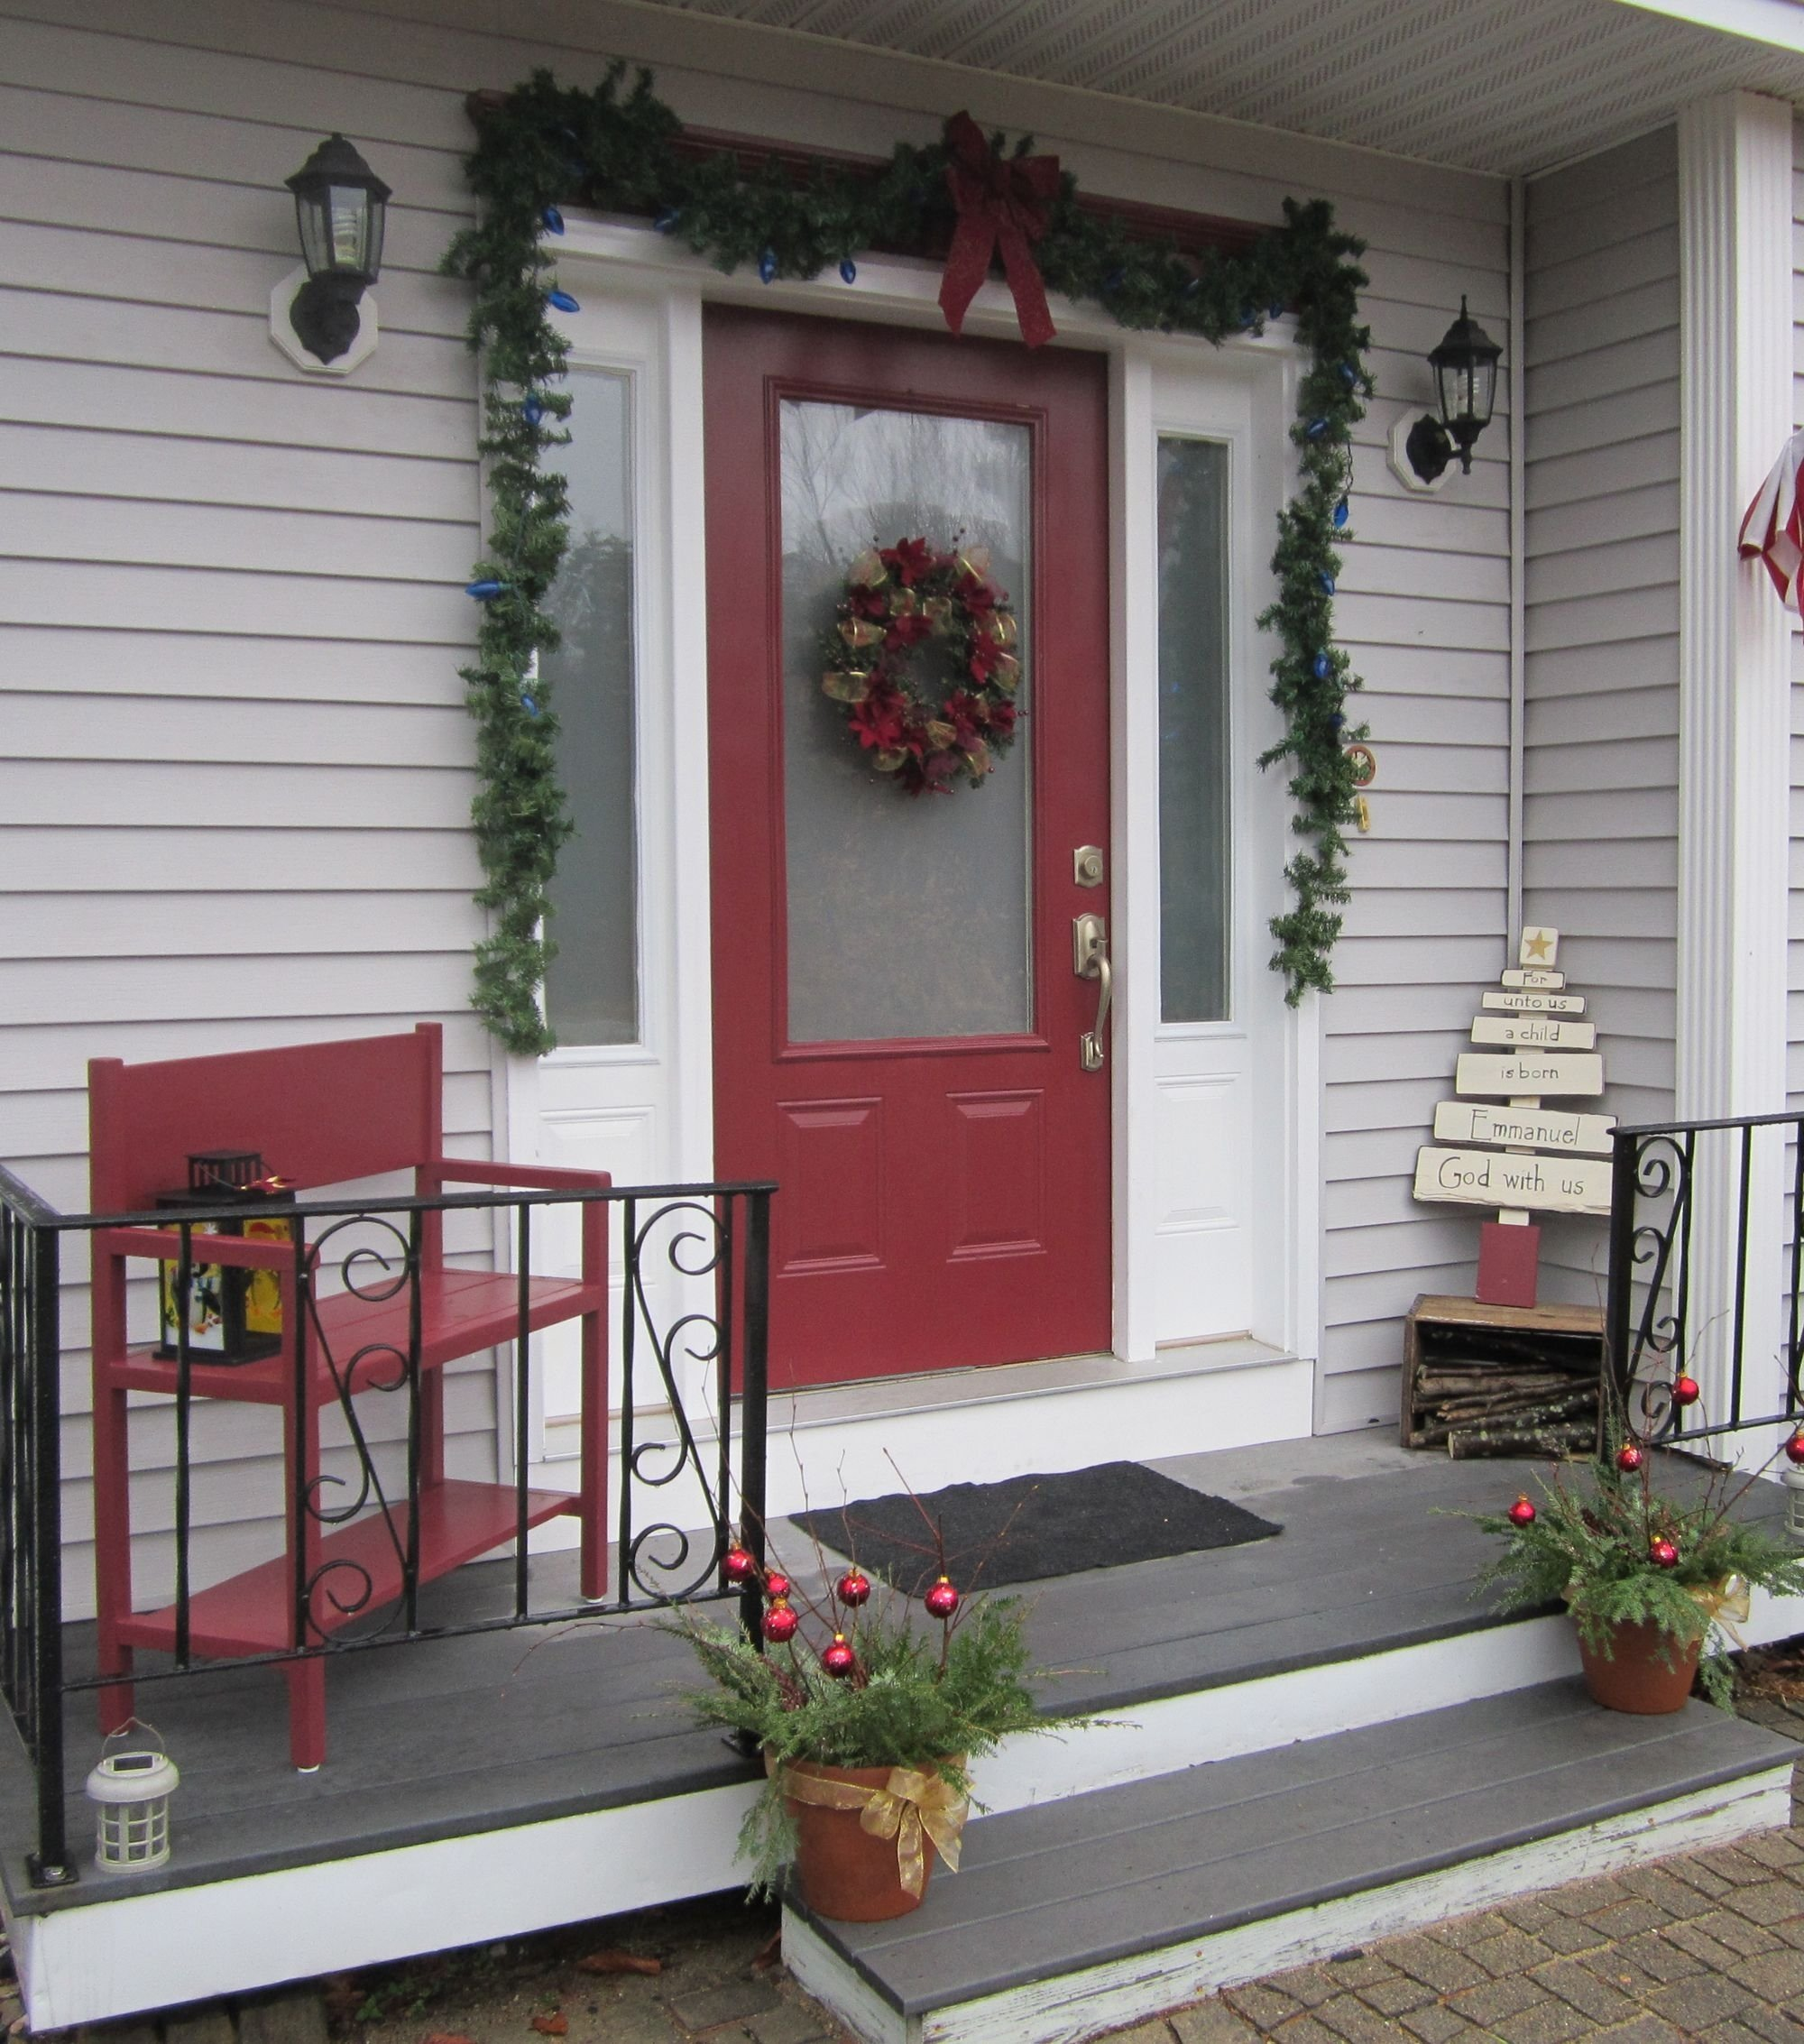 10 Nice Front Porch Christmas Decorating Ideas decorated porches for christmas christmas porch decorating cheap 2020